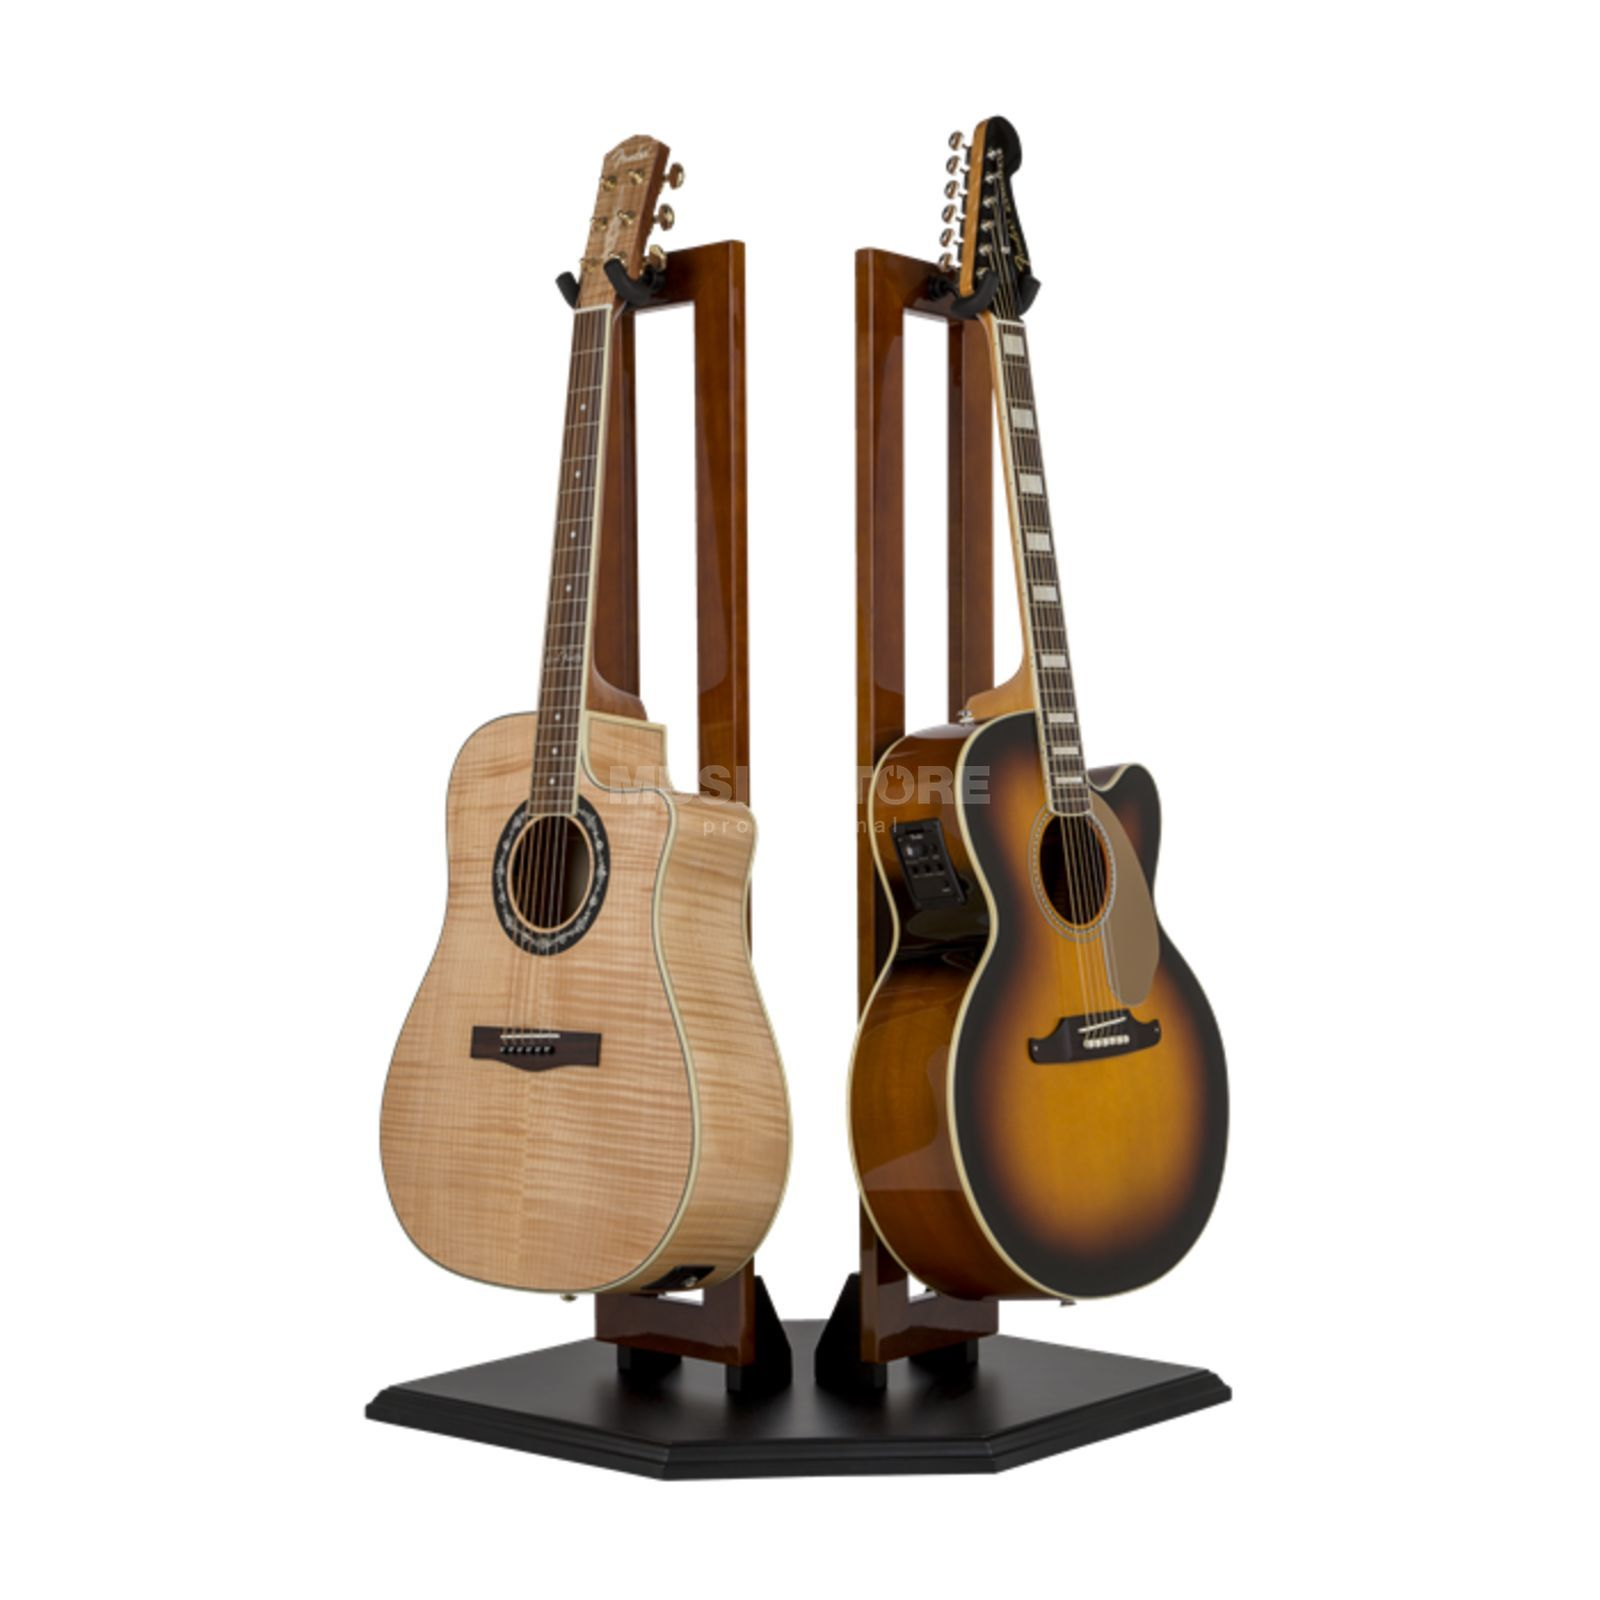 Fender Wood Hanging Display Stand - Double Guitar Stand Cherry Zdjęcie produktu